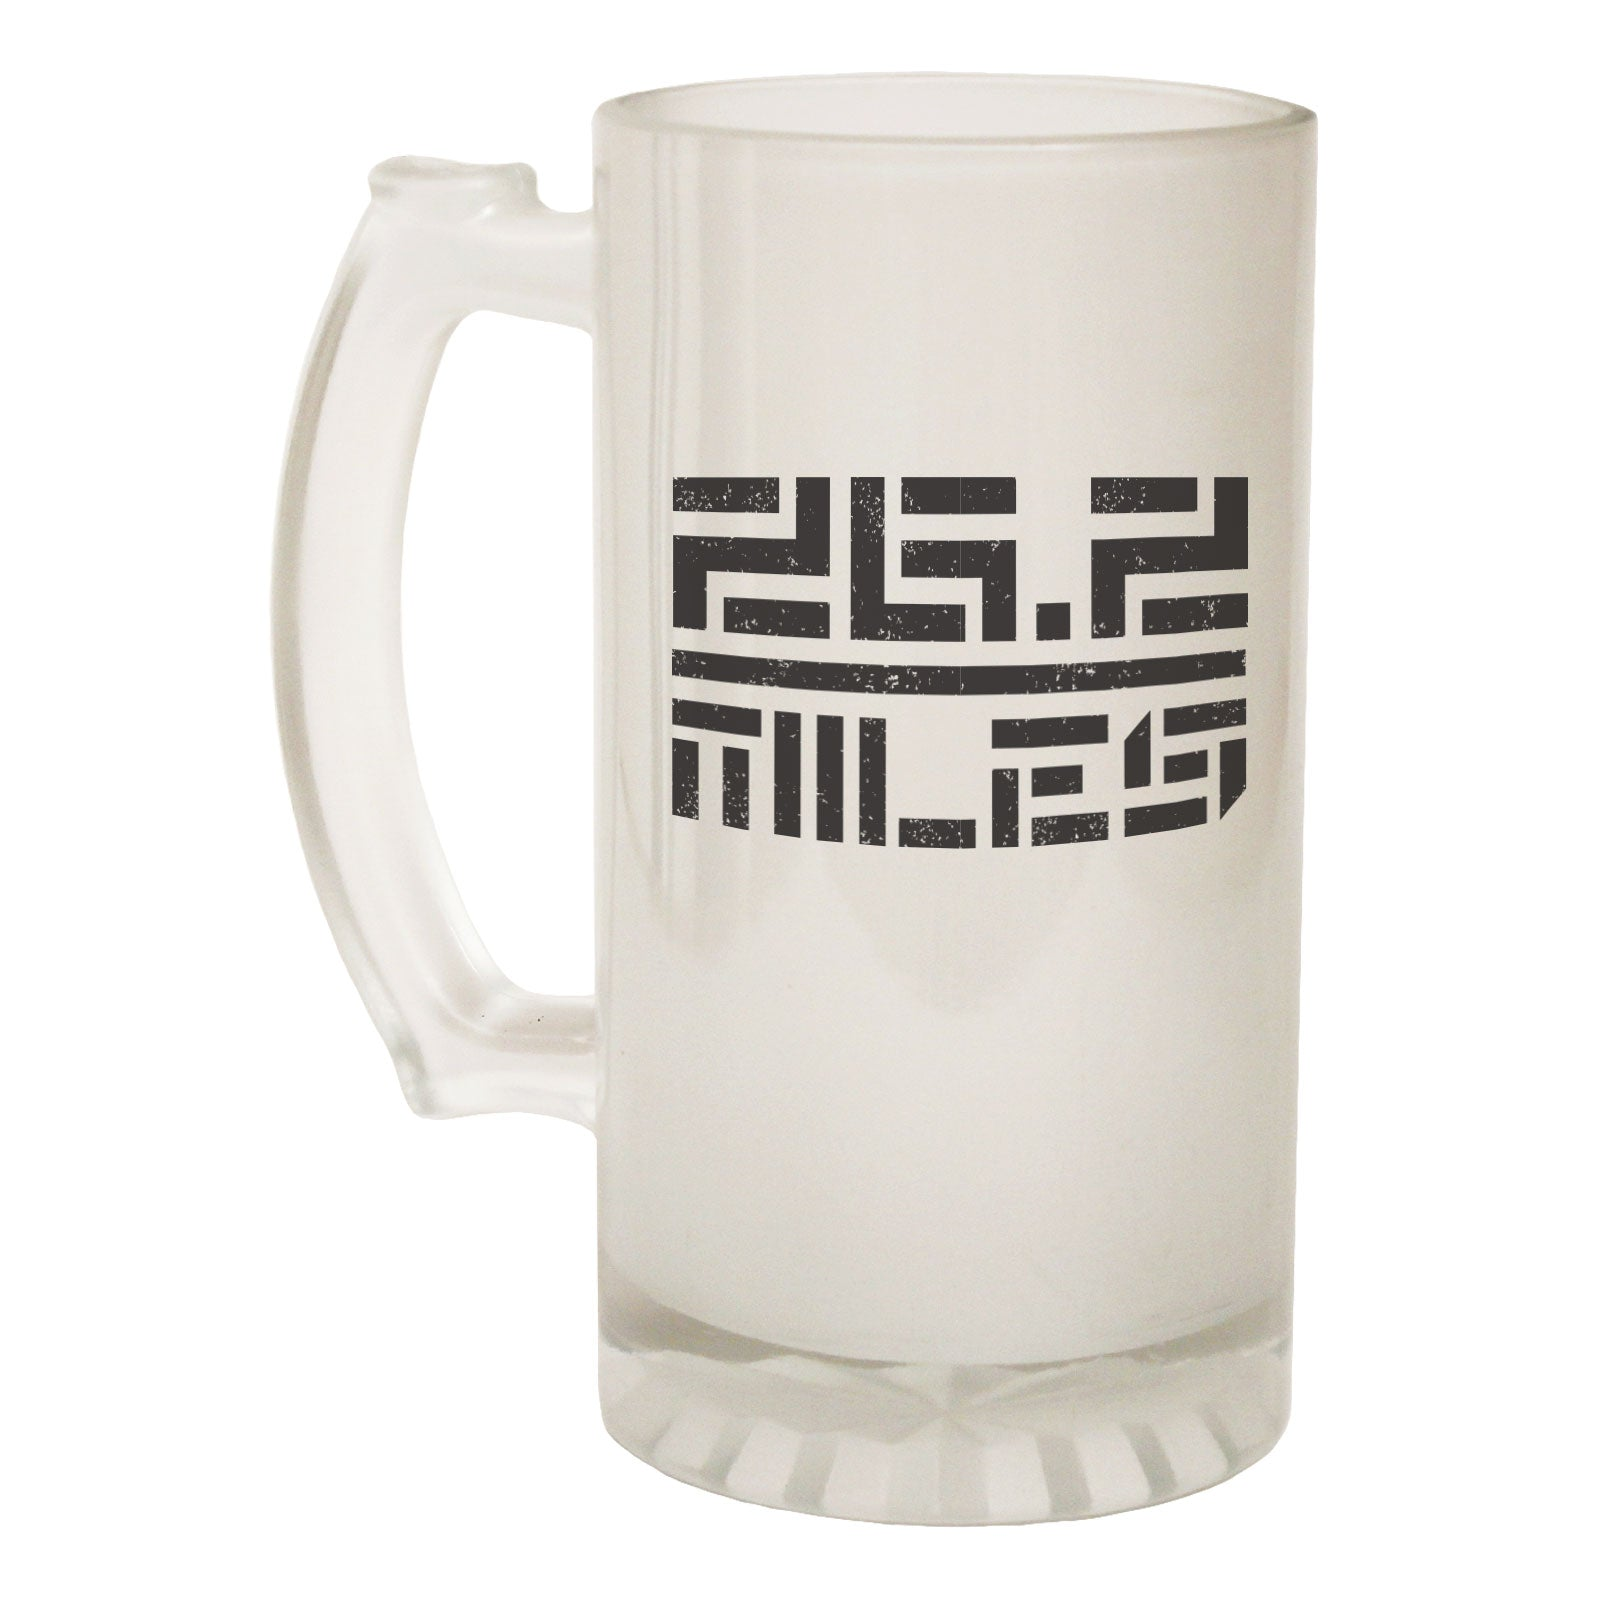 123t Frosted Glass Beer Stein - 26 2 Miles Running - Funny Novelty Birthday